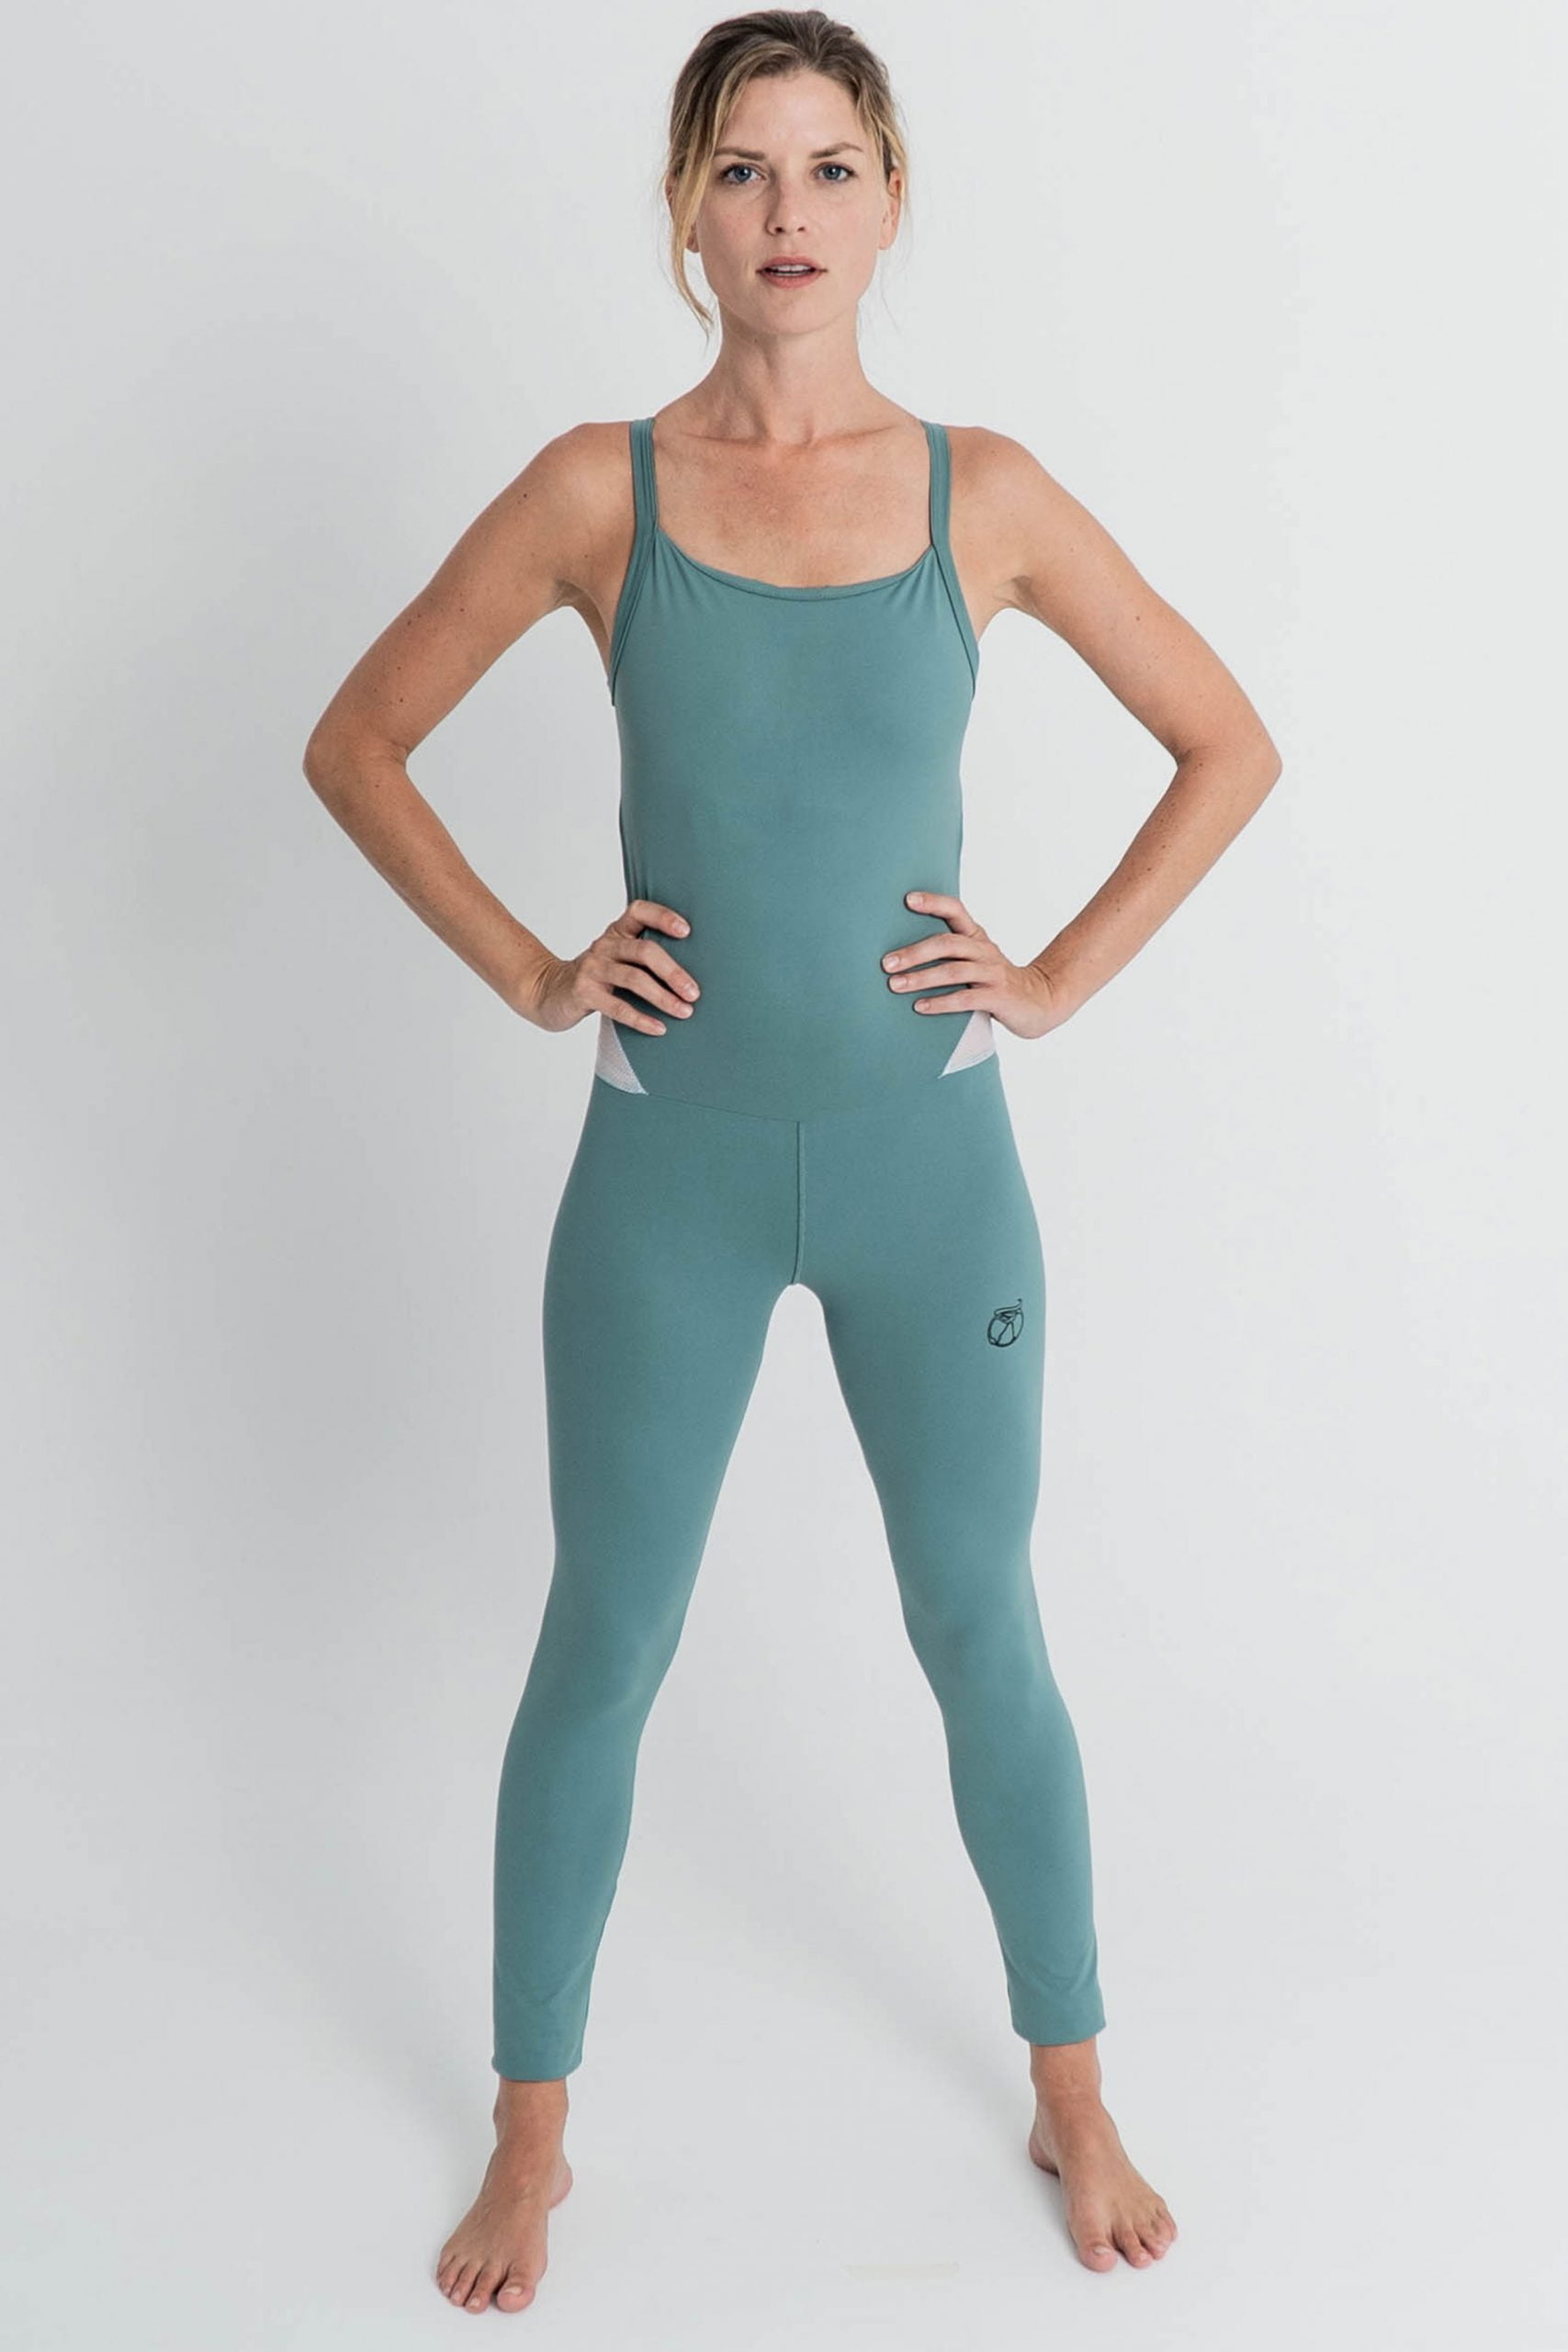 Jumsuit Lilia turquoise for yoga